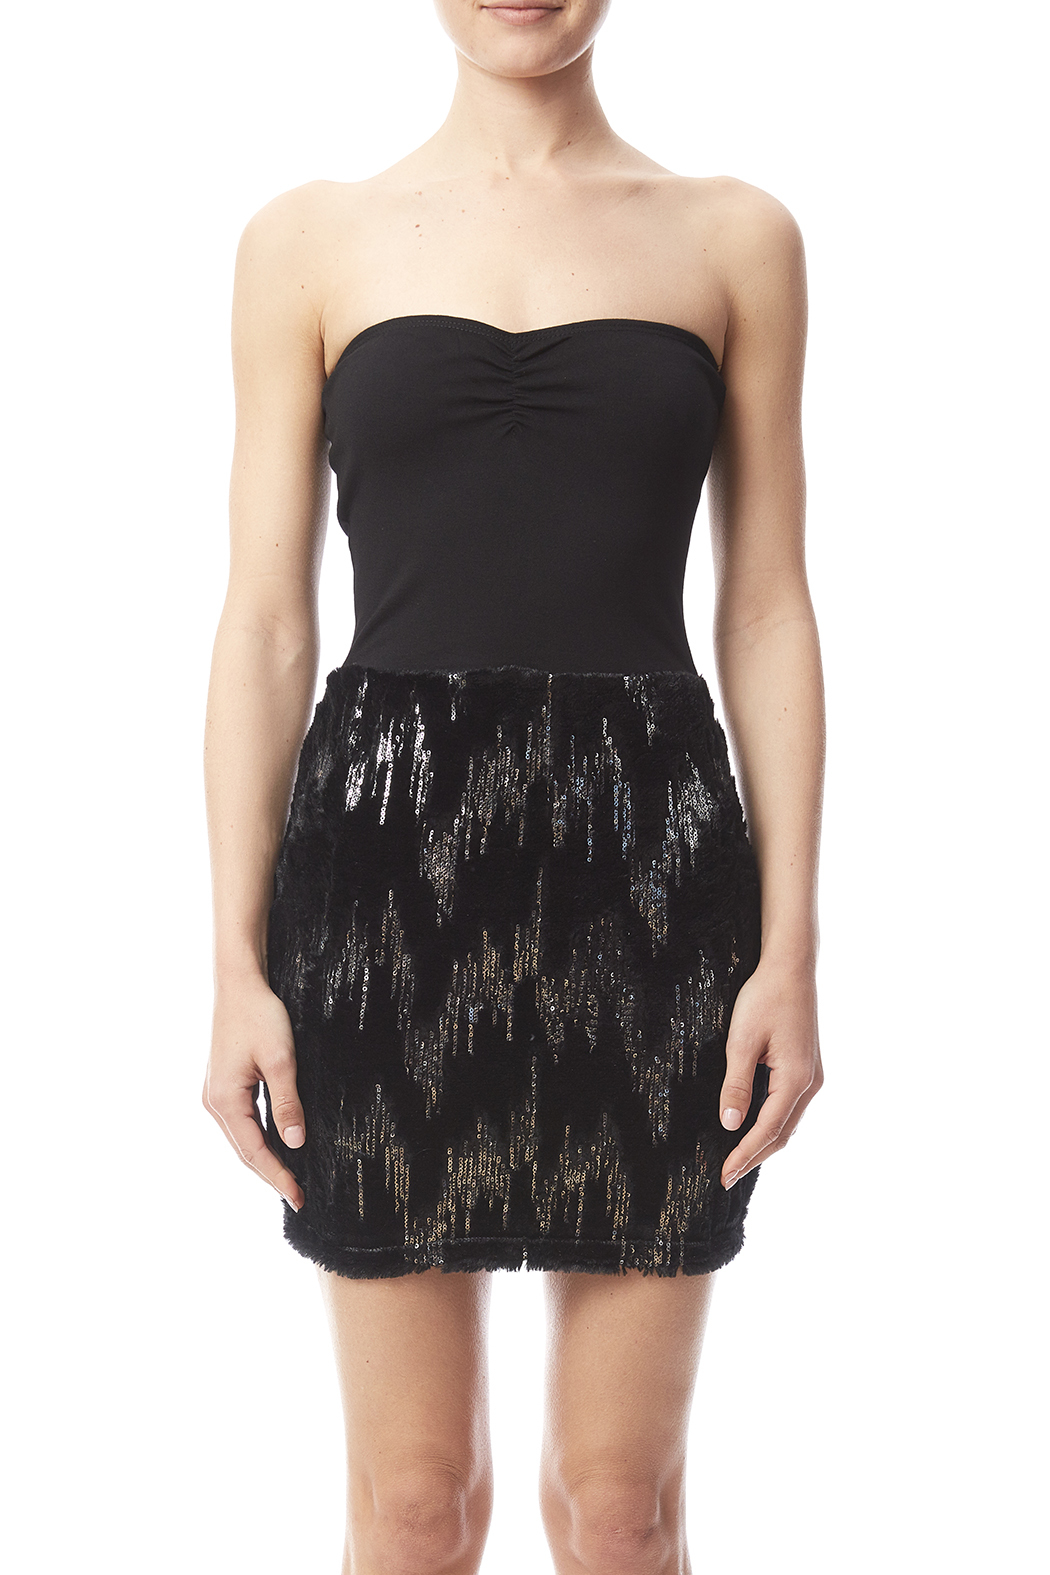 W by Wenjie Black Strapless Dress - Side Cropped Image